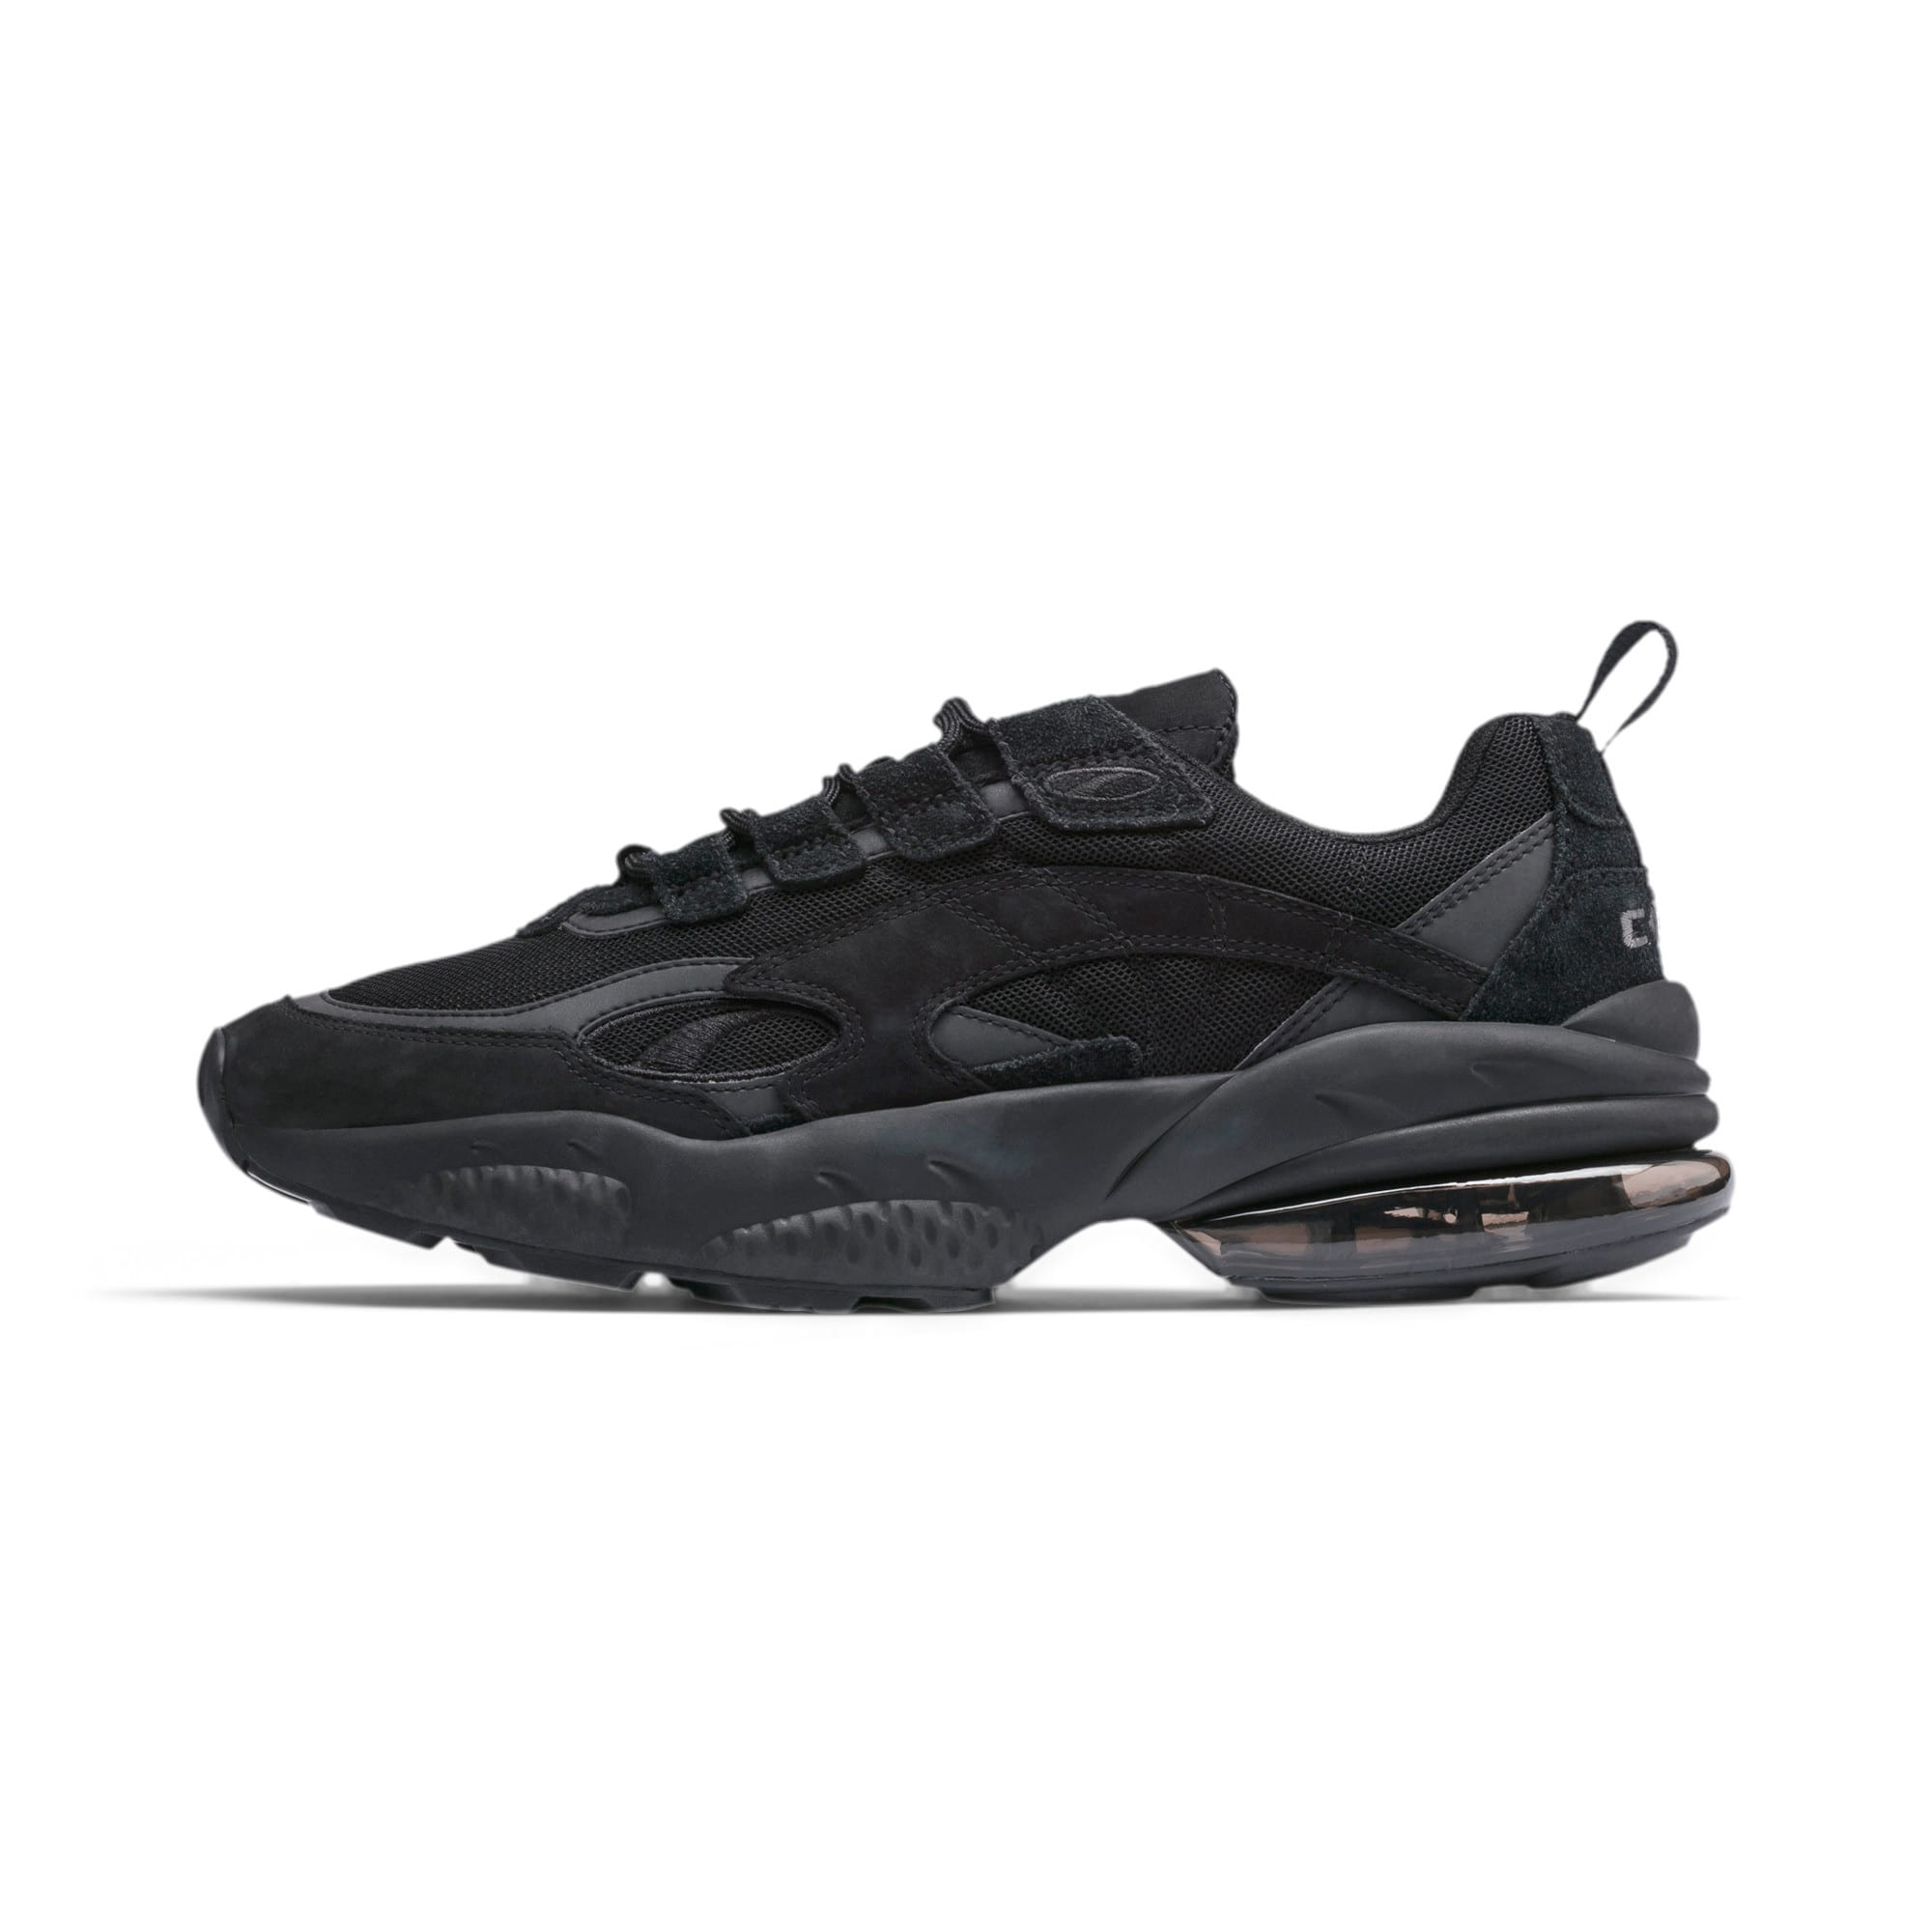 Thumbnail 1 of Scarpe da ginnastica CELL Venom Blackout, Puma Black-Puma Black, medium